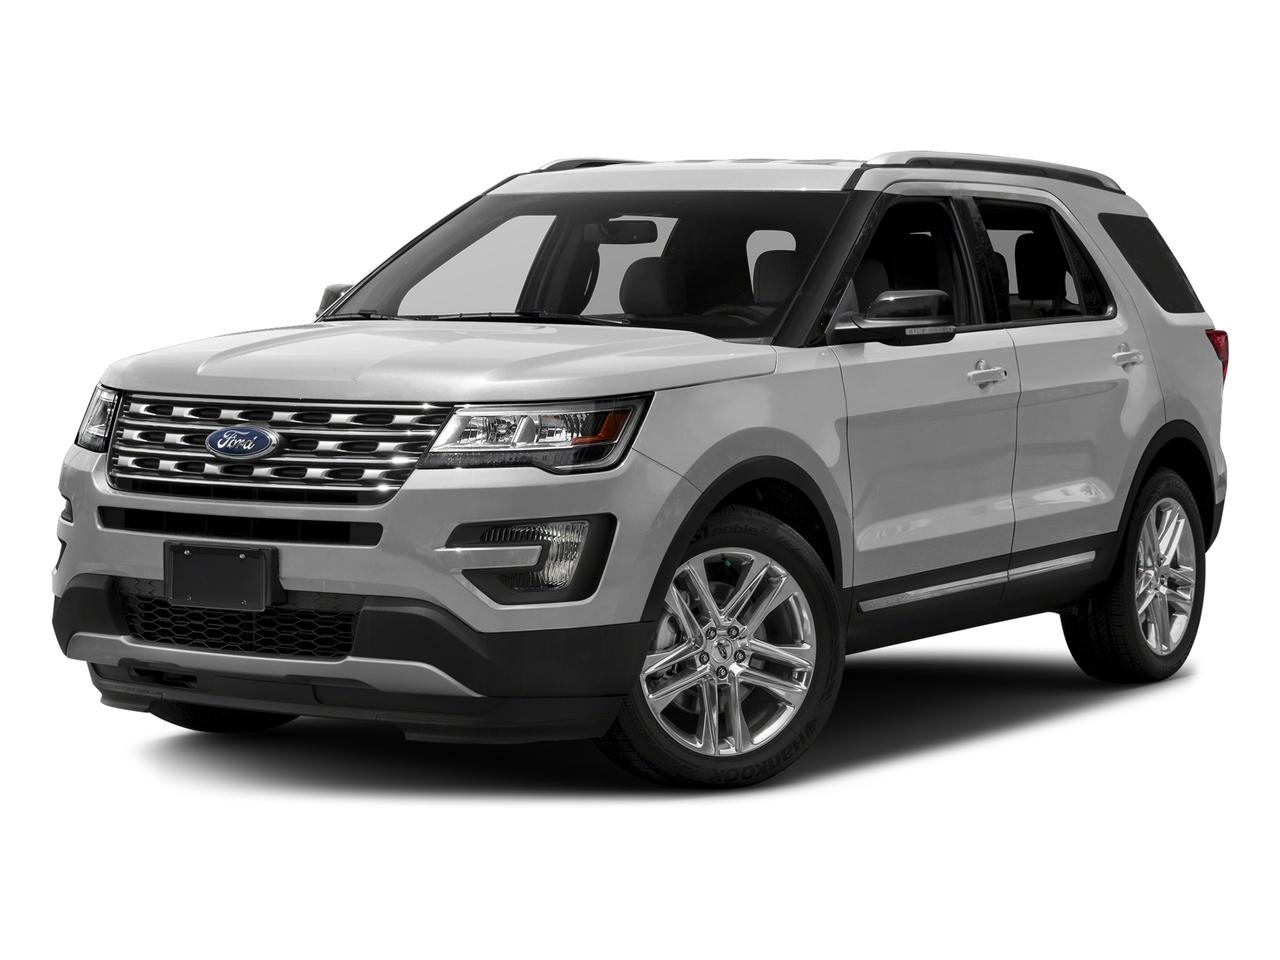 2016 Ford Explorer Vehicle Photo in PORTLAND, OR 97225-3518